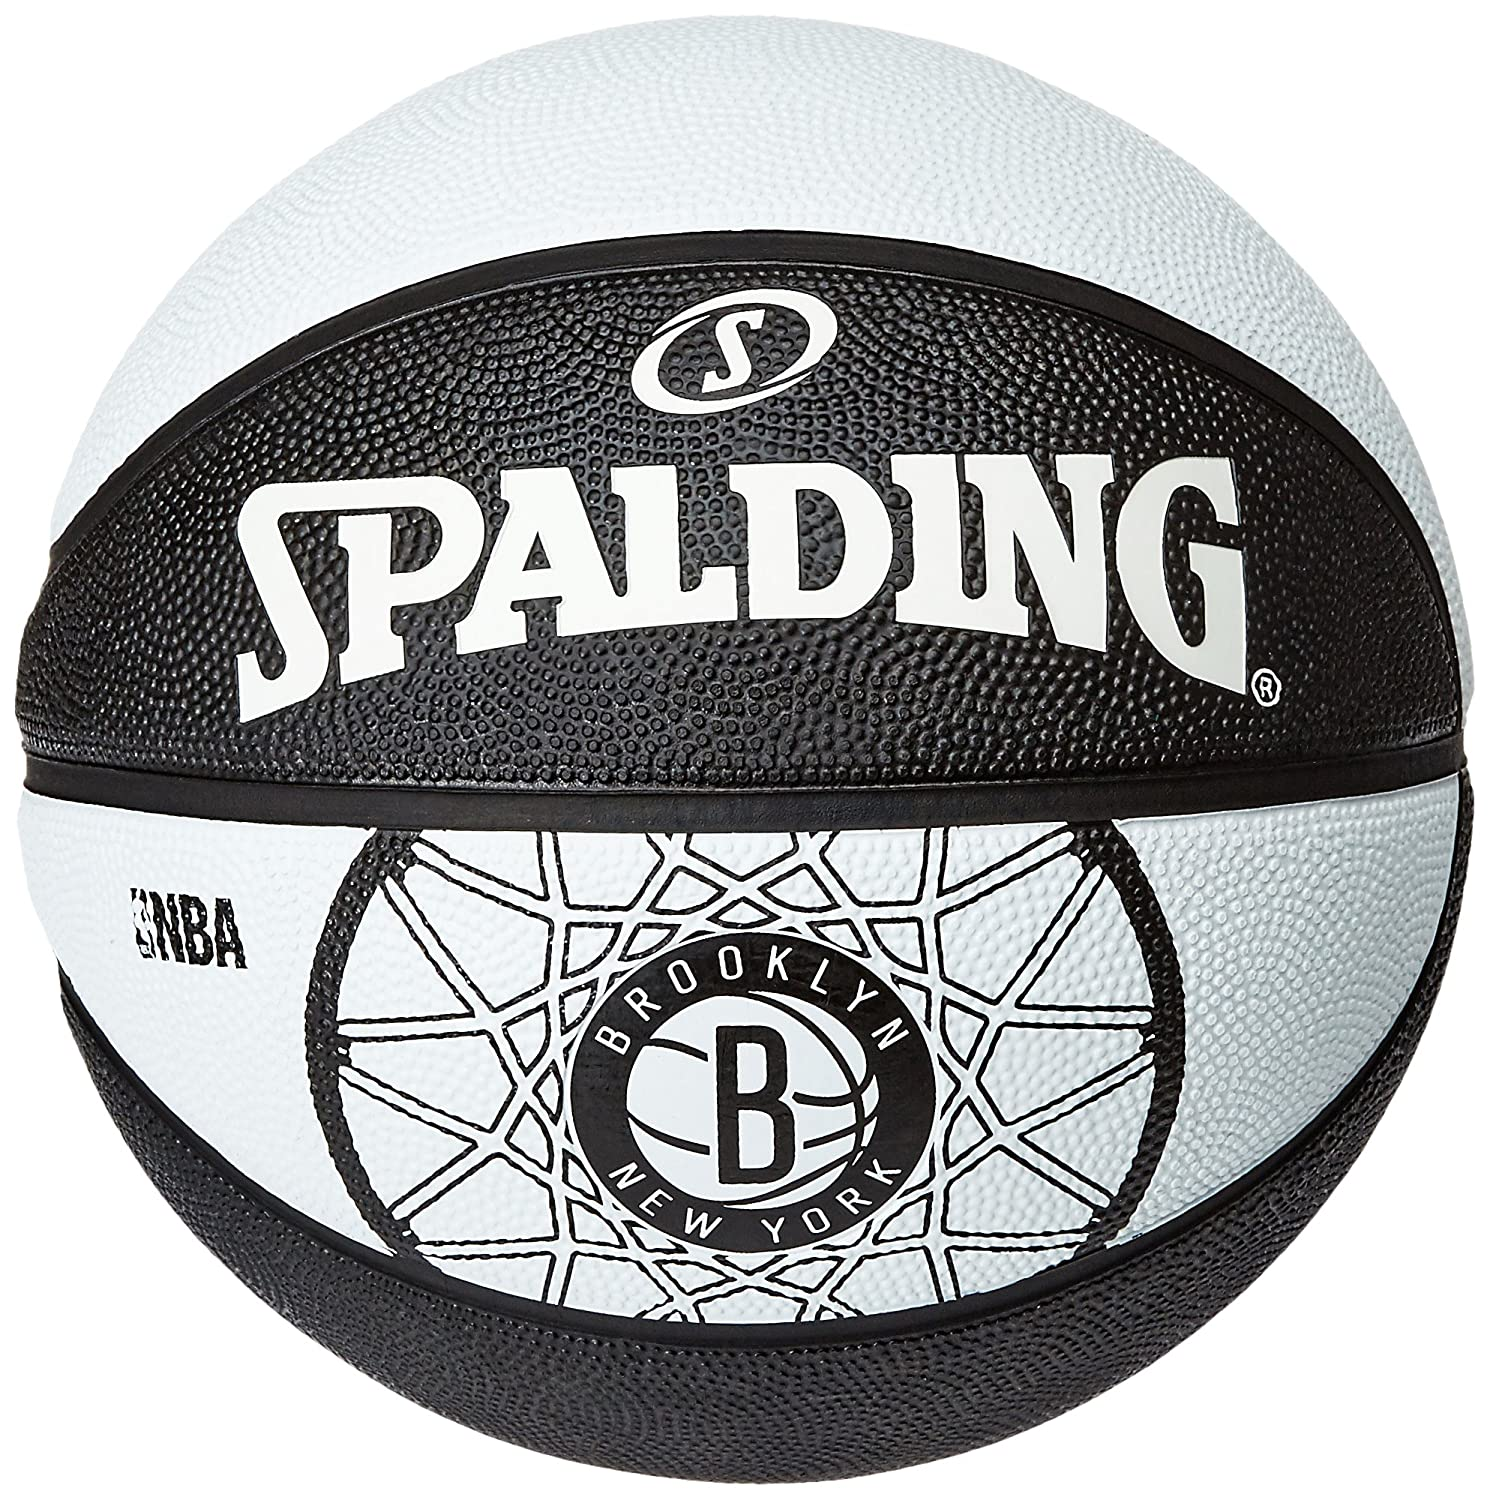 Spalding Brooklyn Nets Basketball-Ballon Taille 7 3001587012317